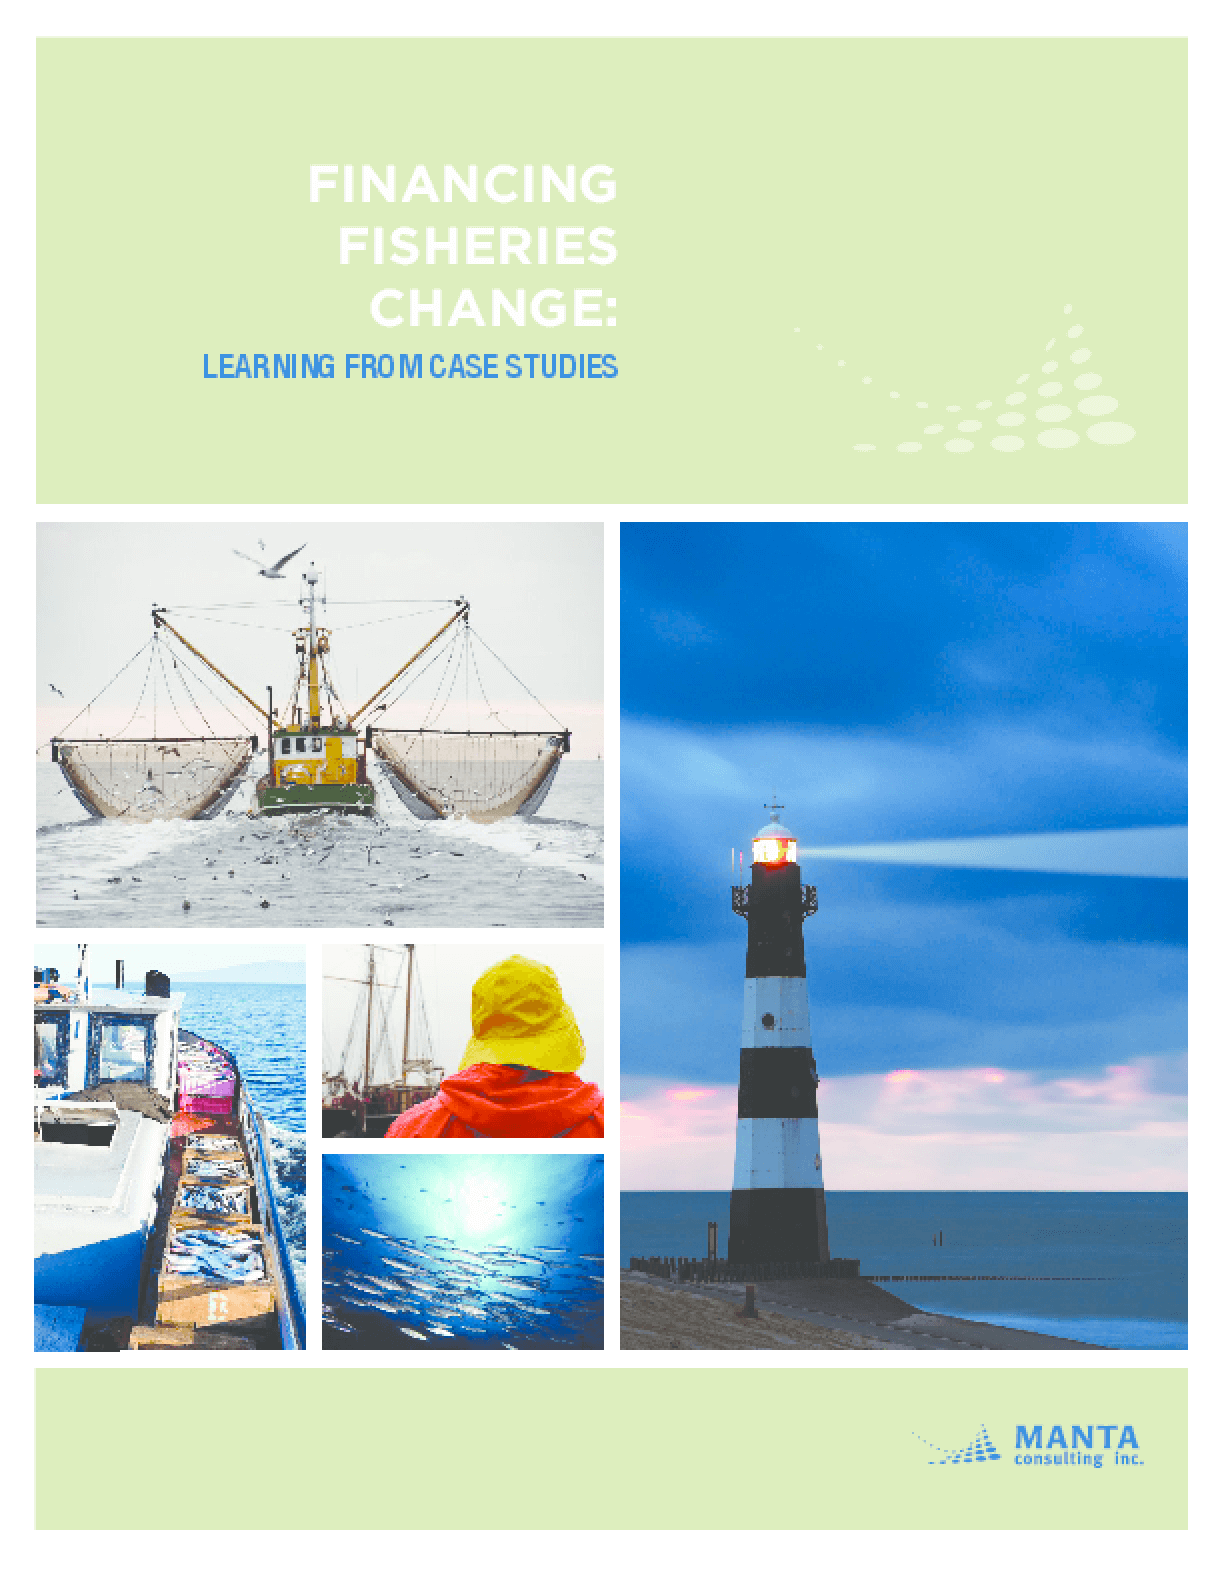 Financing Fisheries Change: Learning from Case Studies